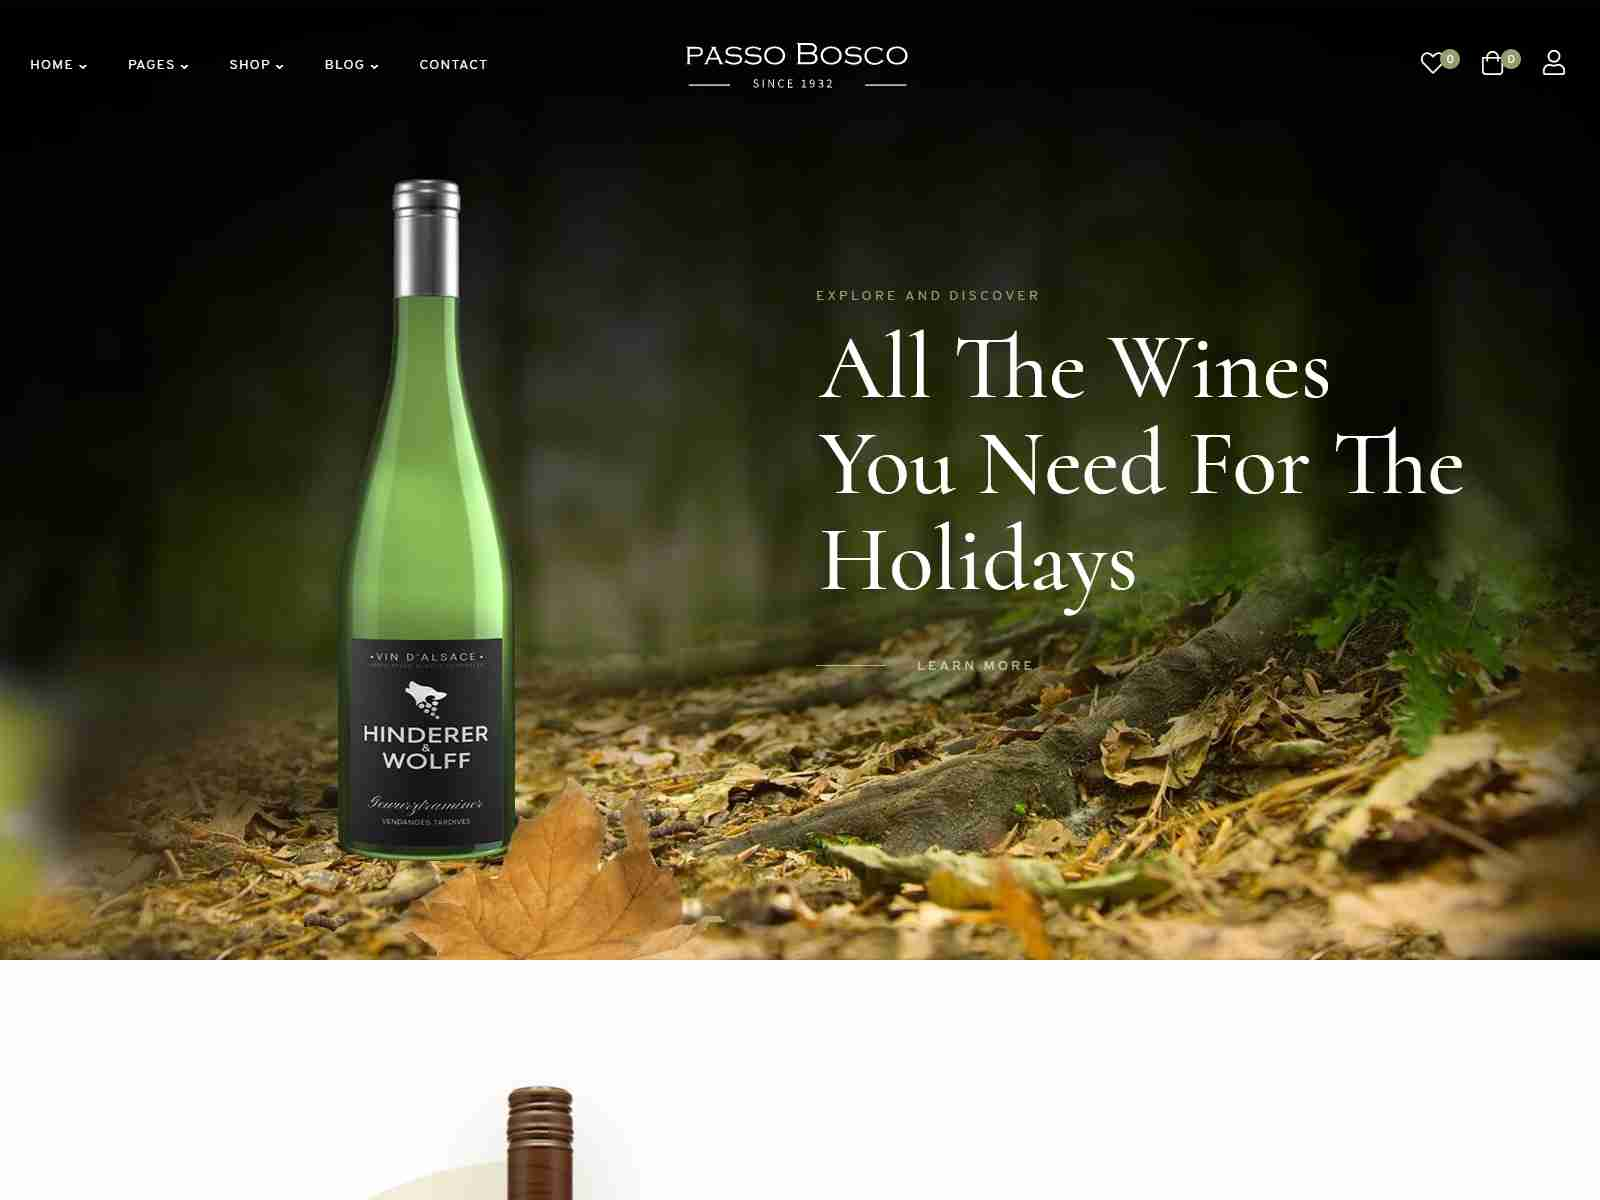 Passo Bosco - Wine & Vineyard WordPress Theme